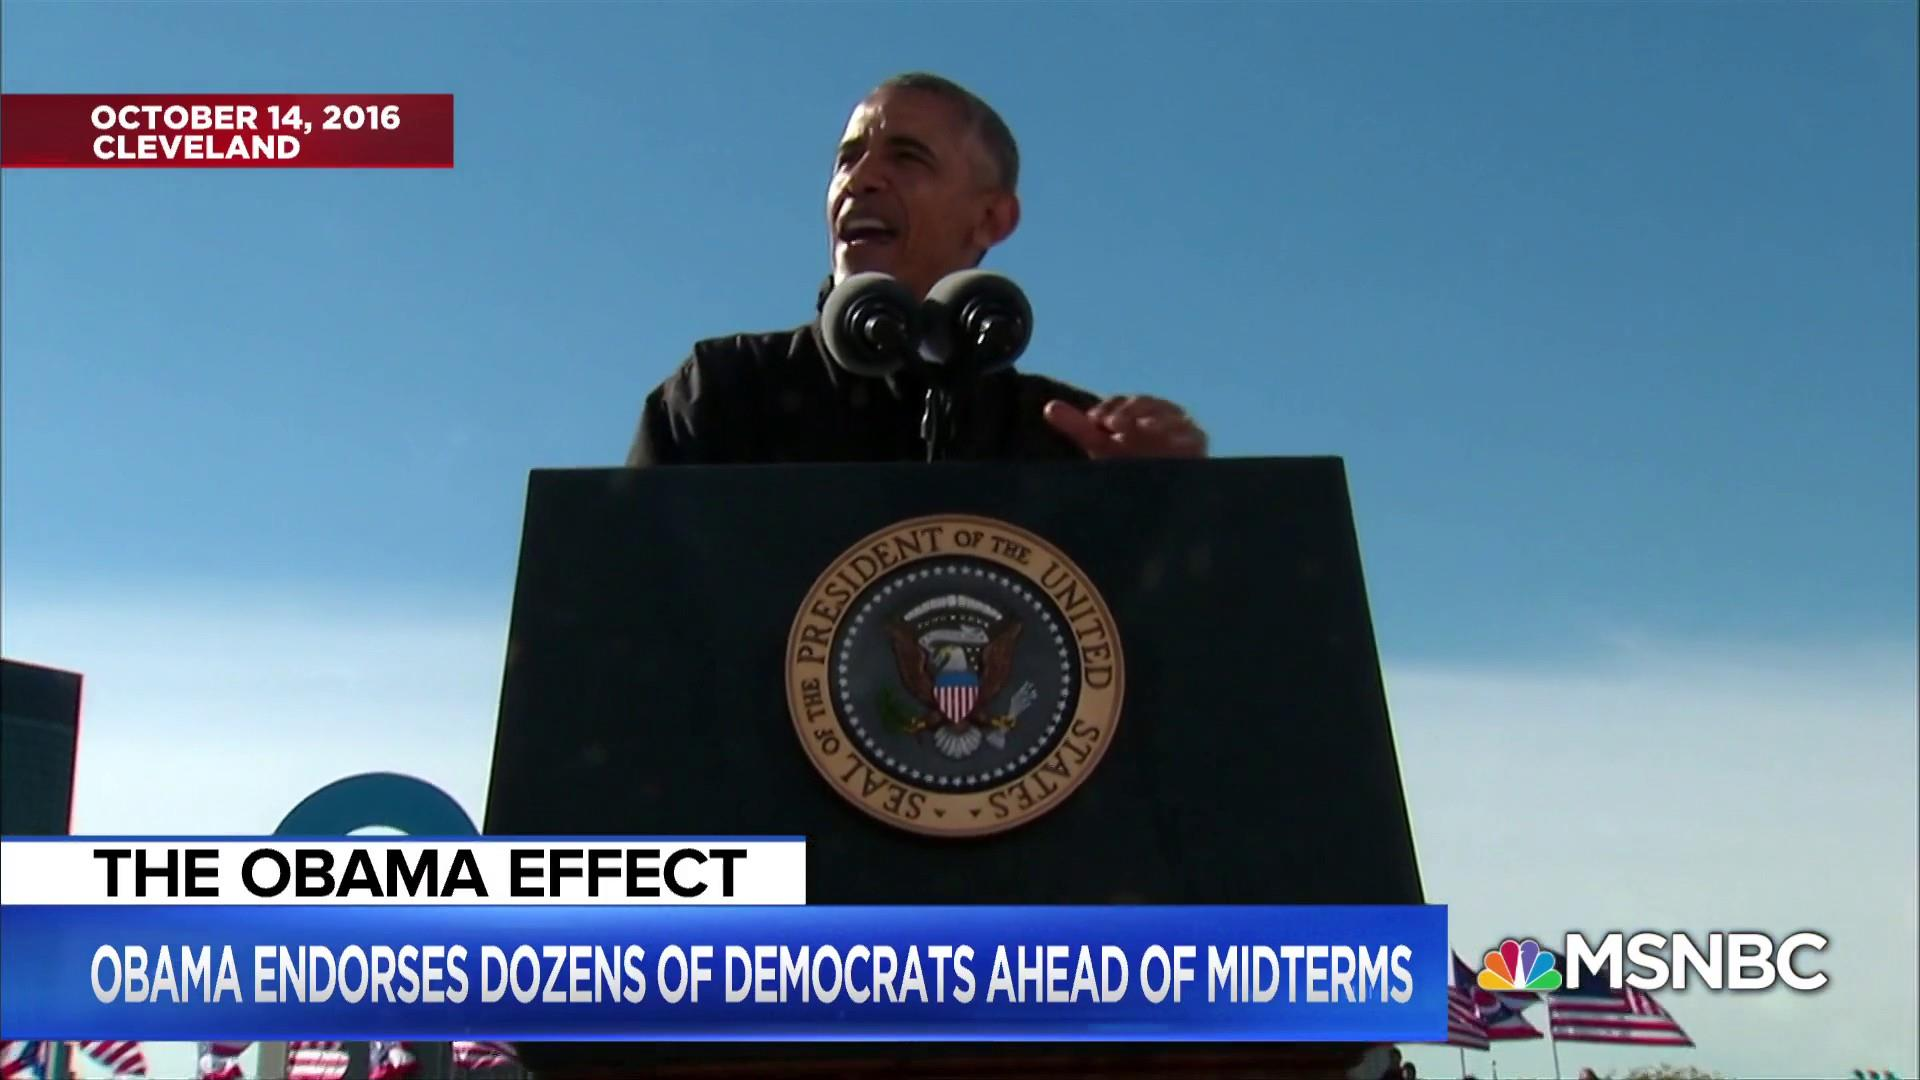 Will Obama's endorsements really make a difference?